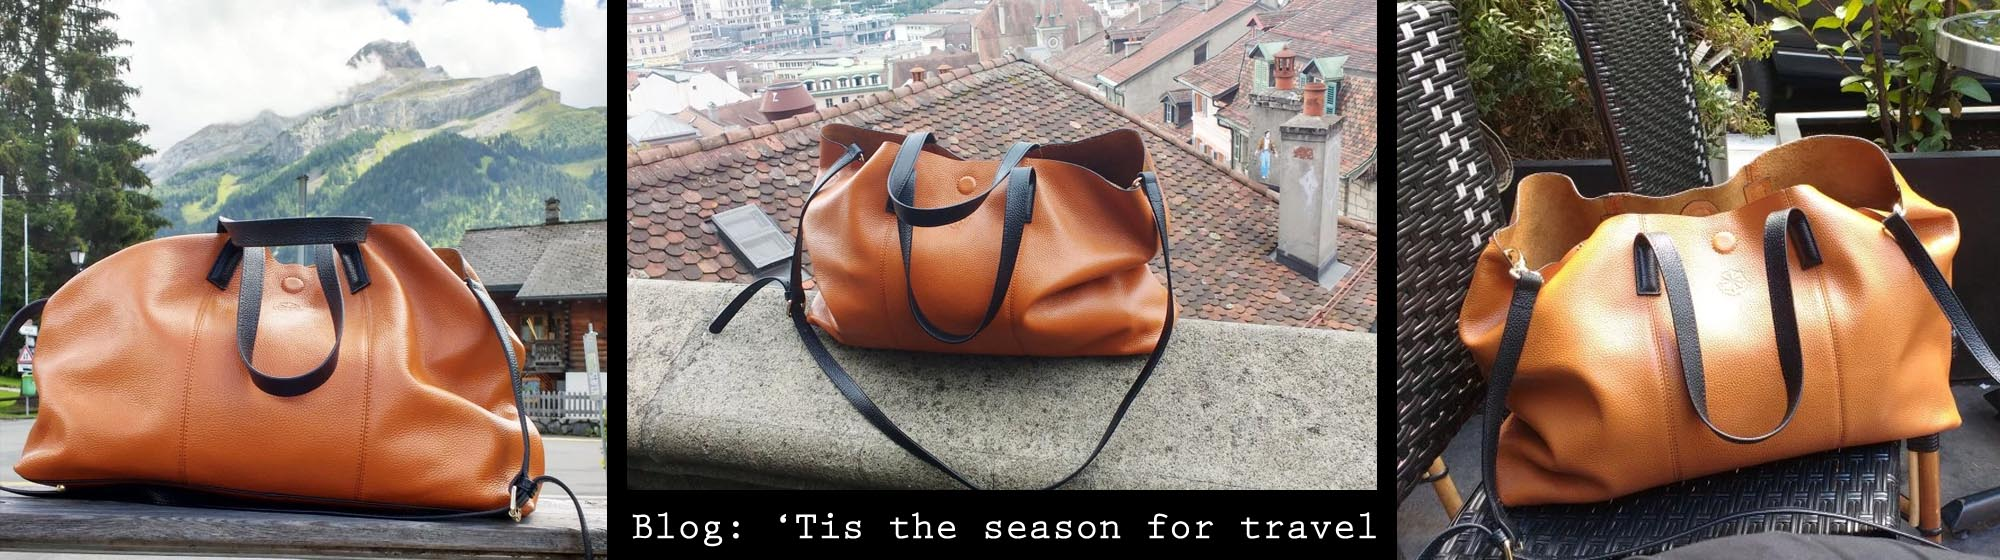 blog-tis-the-season-for-travel